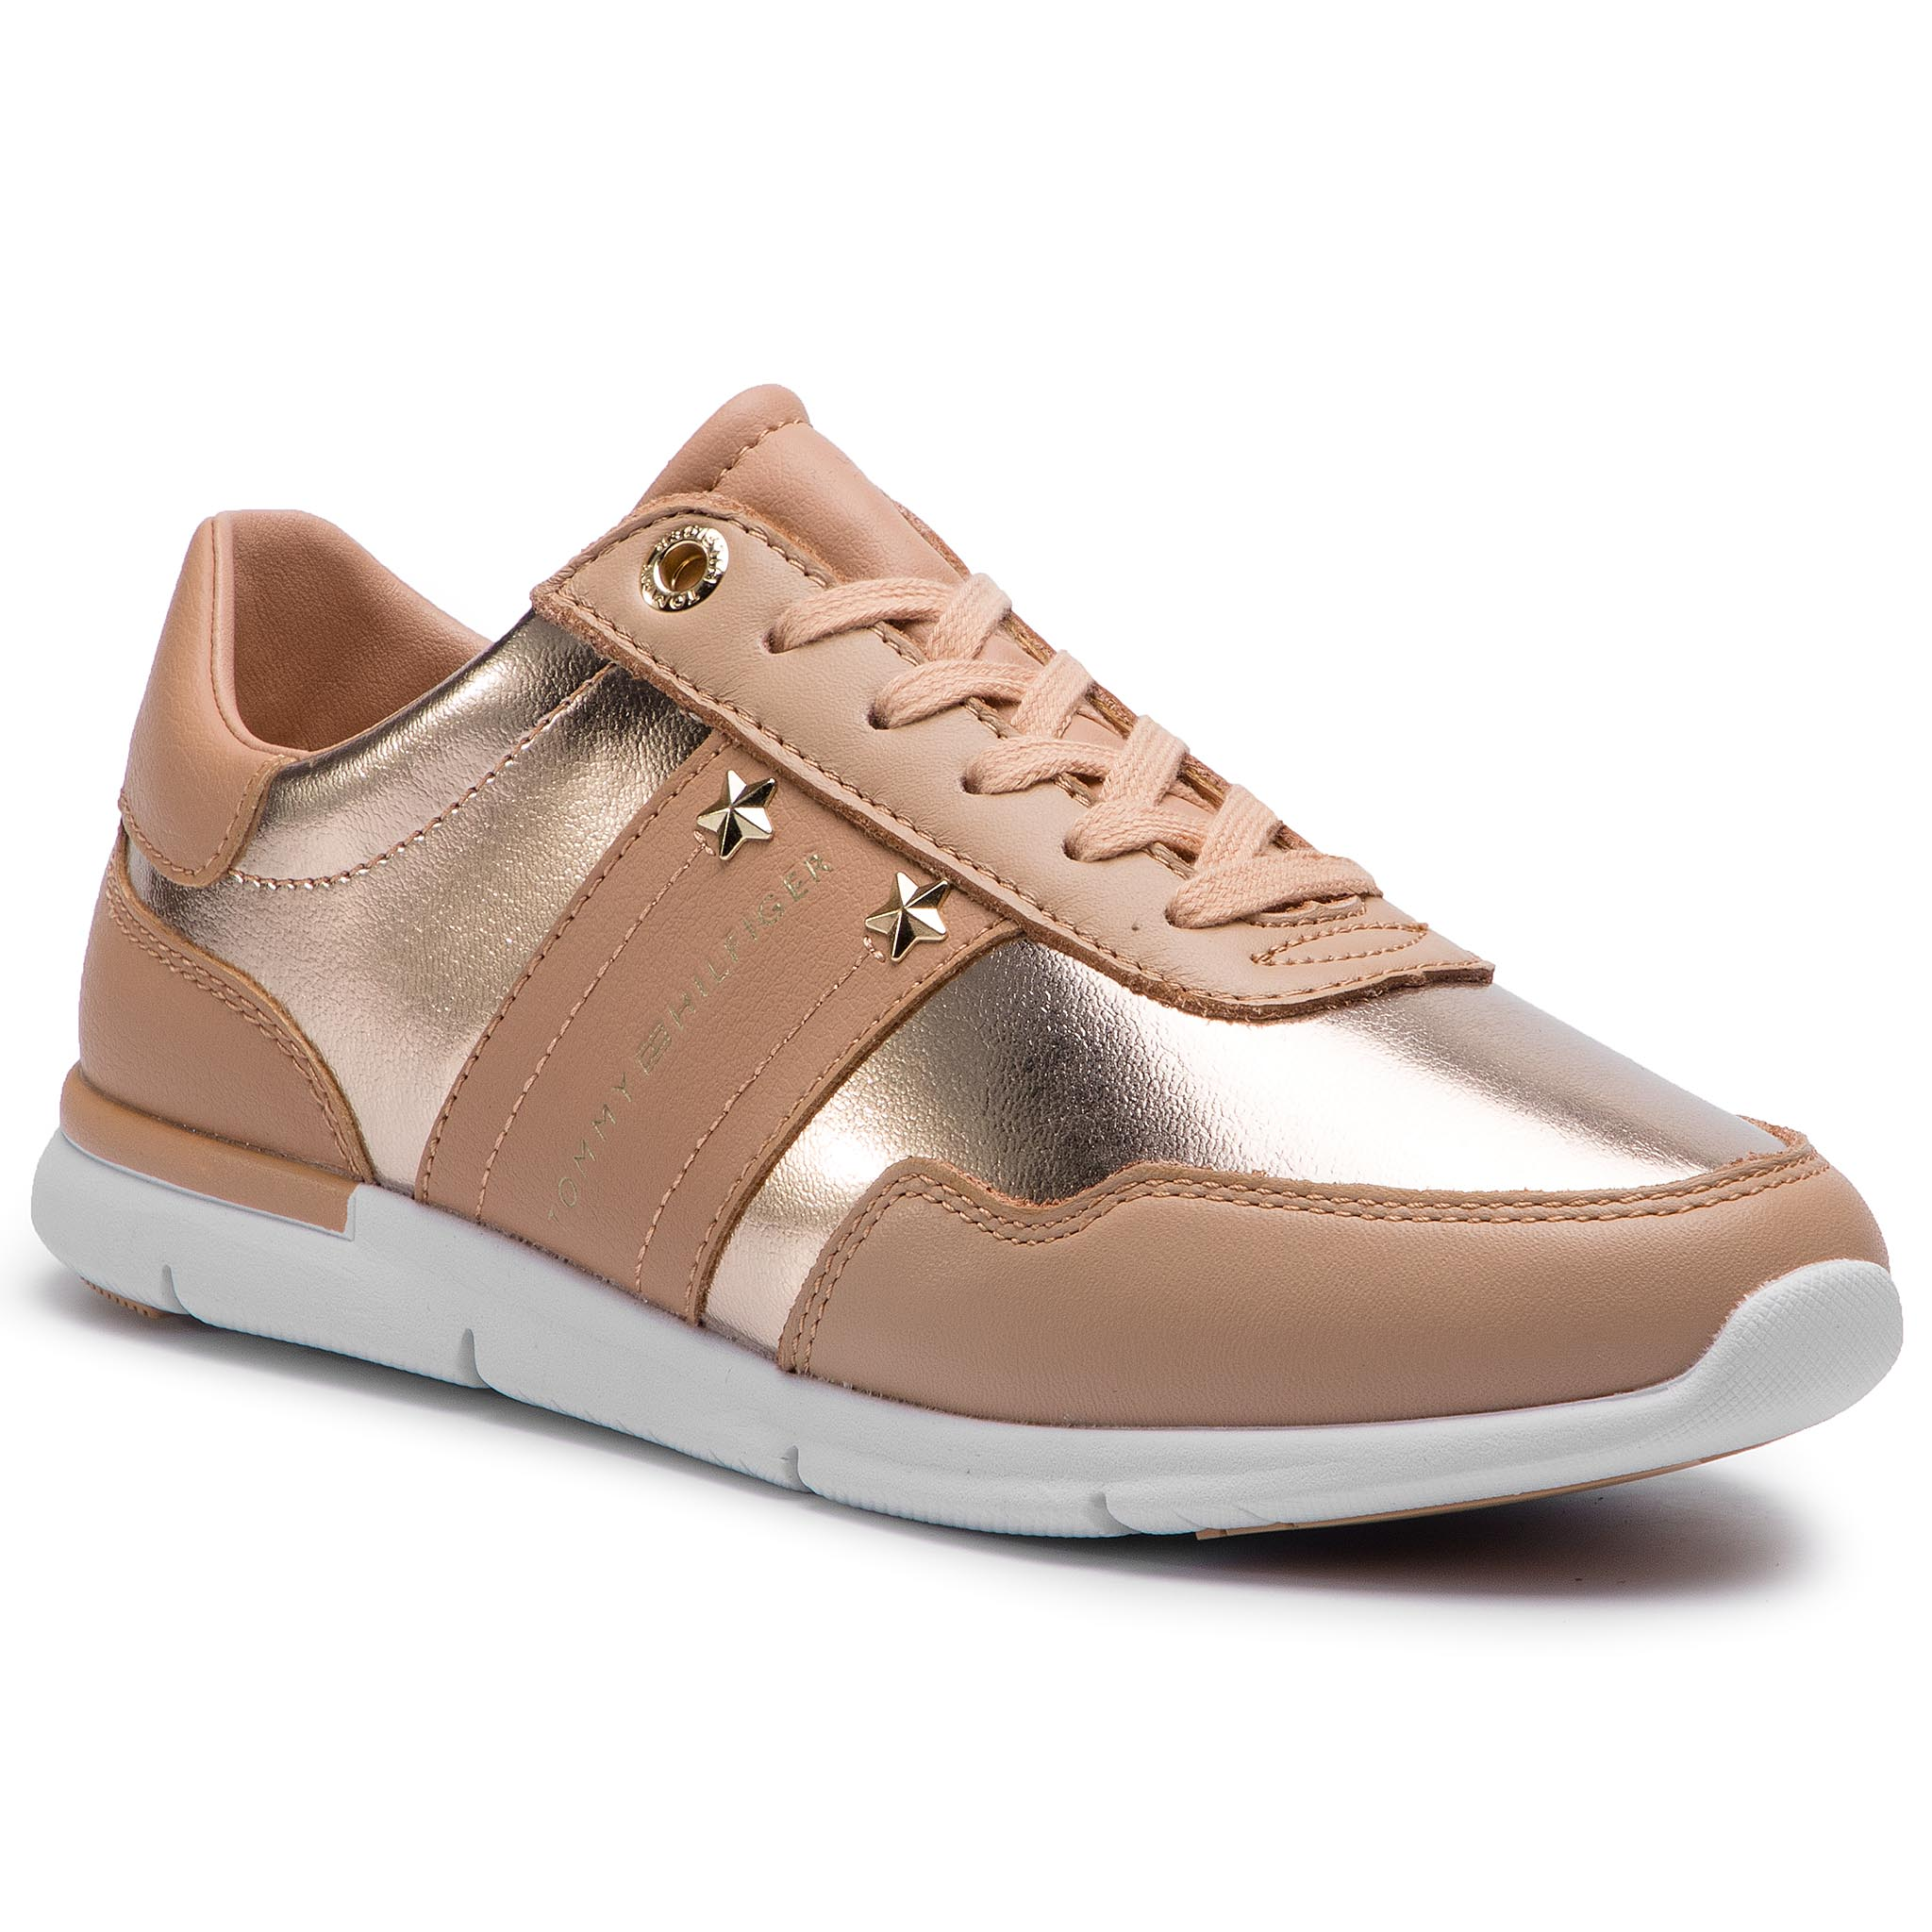 899672ae11754 Sneakers TOMMY HILFIGER Tommy Essential Leather Sneaker FW0FW03688 Peach  Rose 653